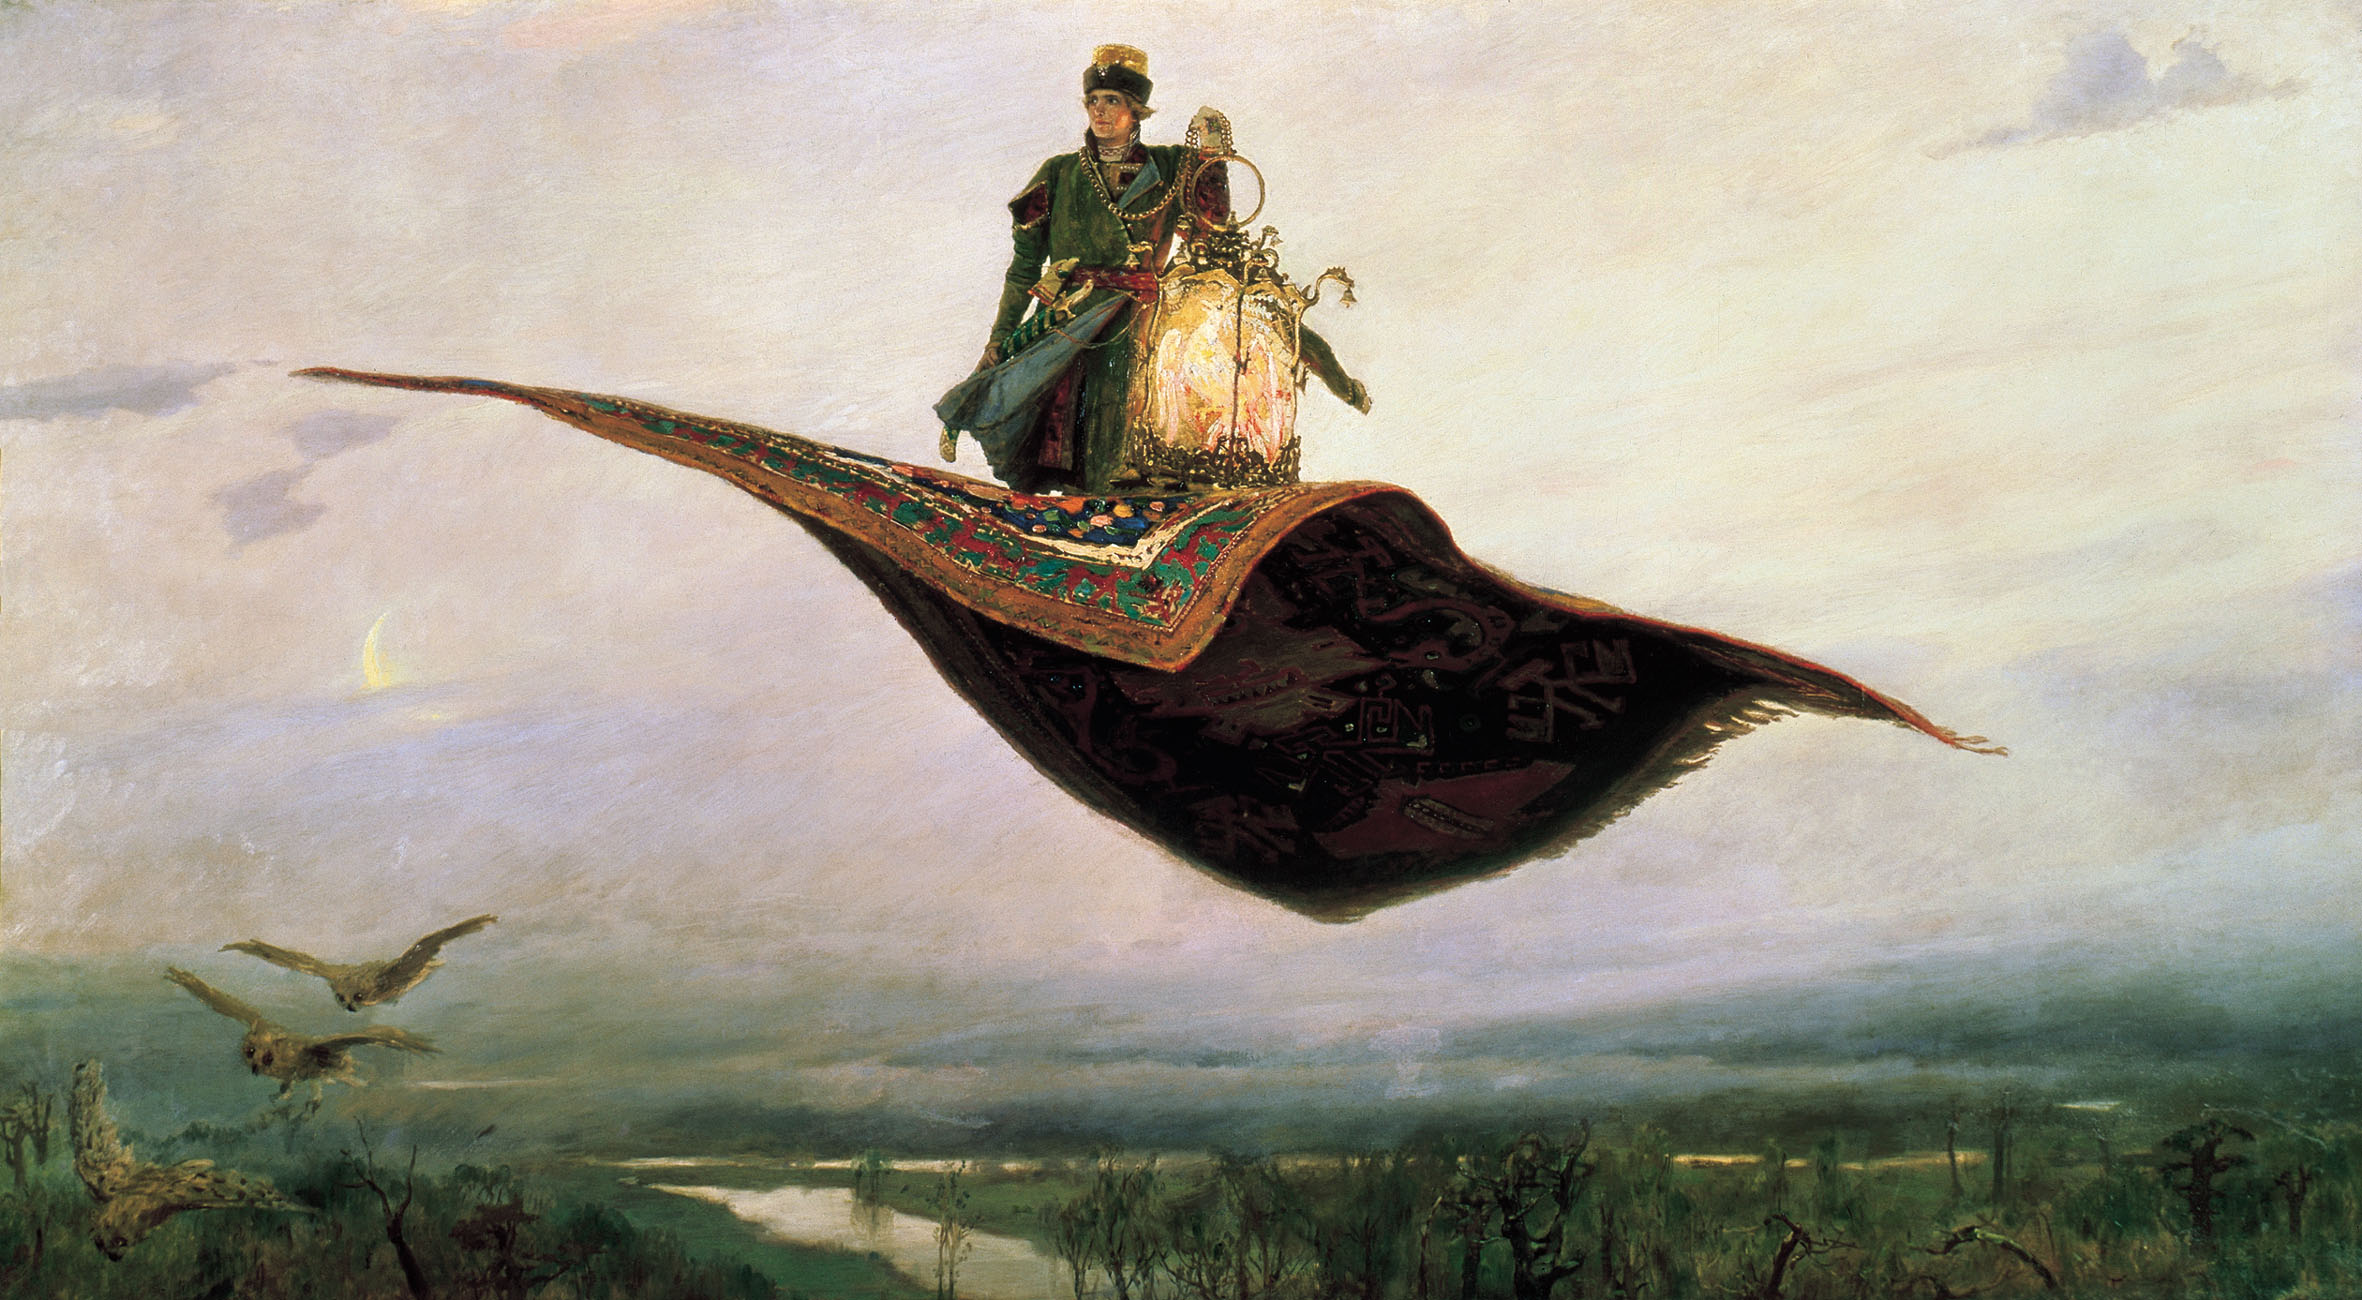 FileVasnetsov Samoletjpg Wikipedia